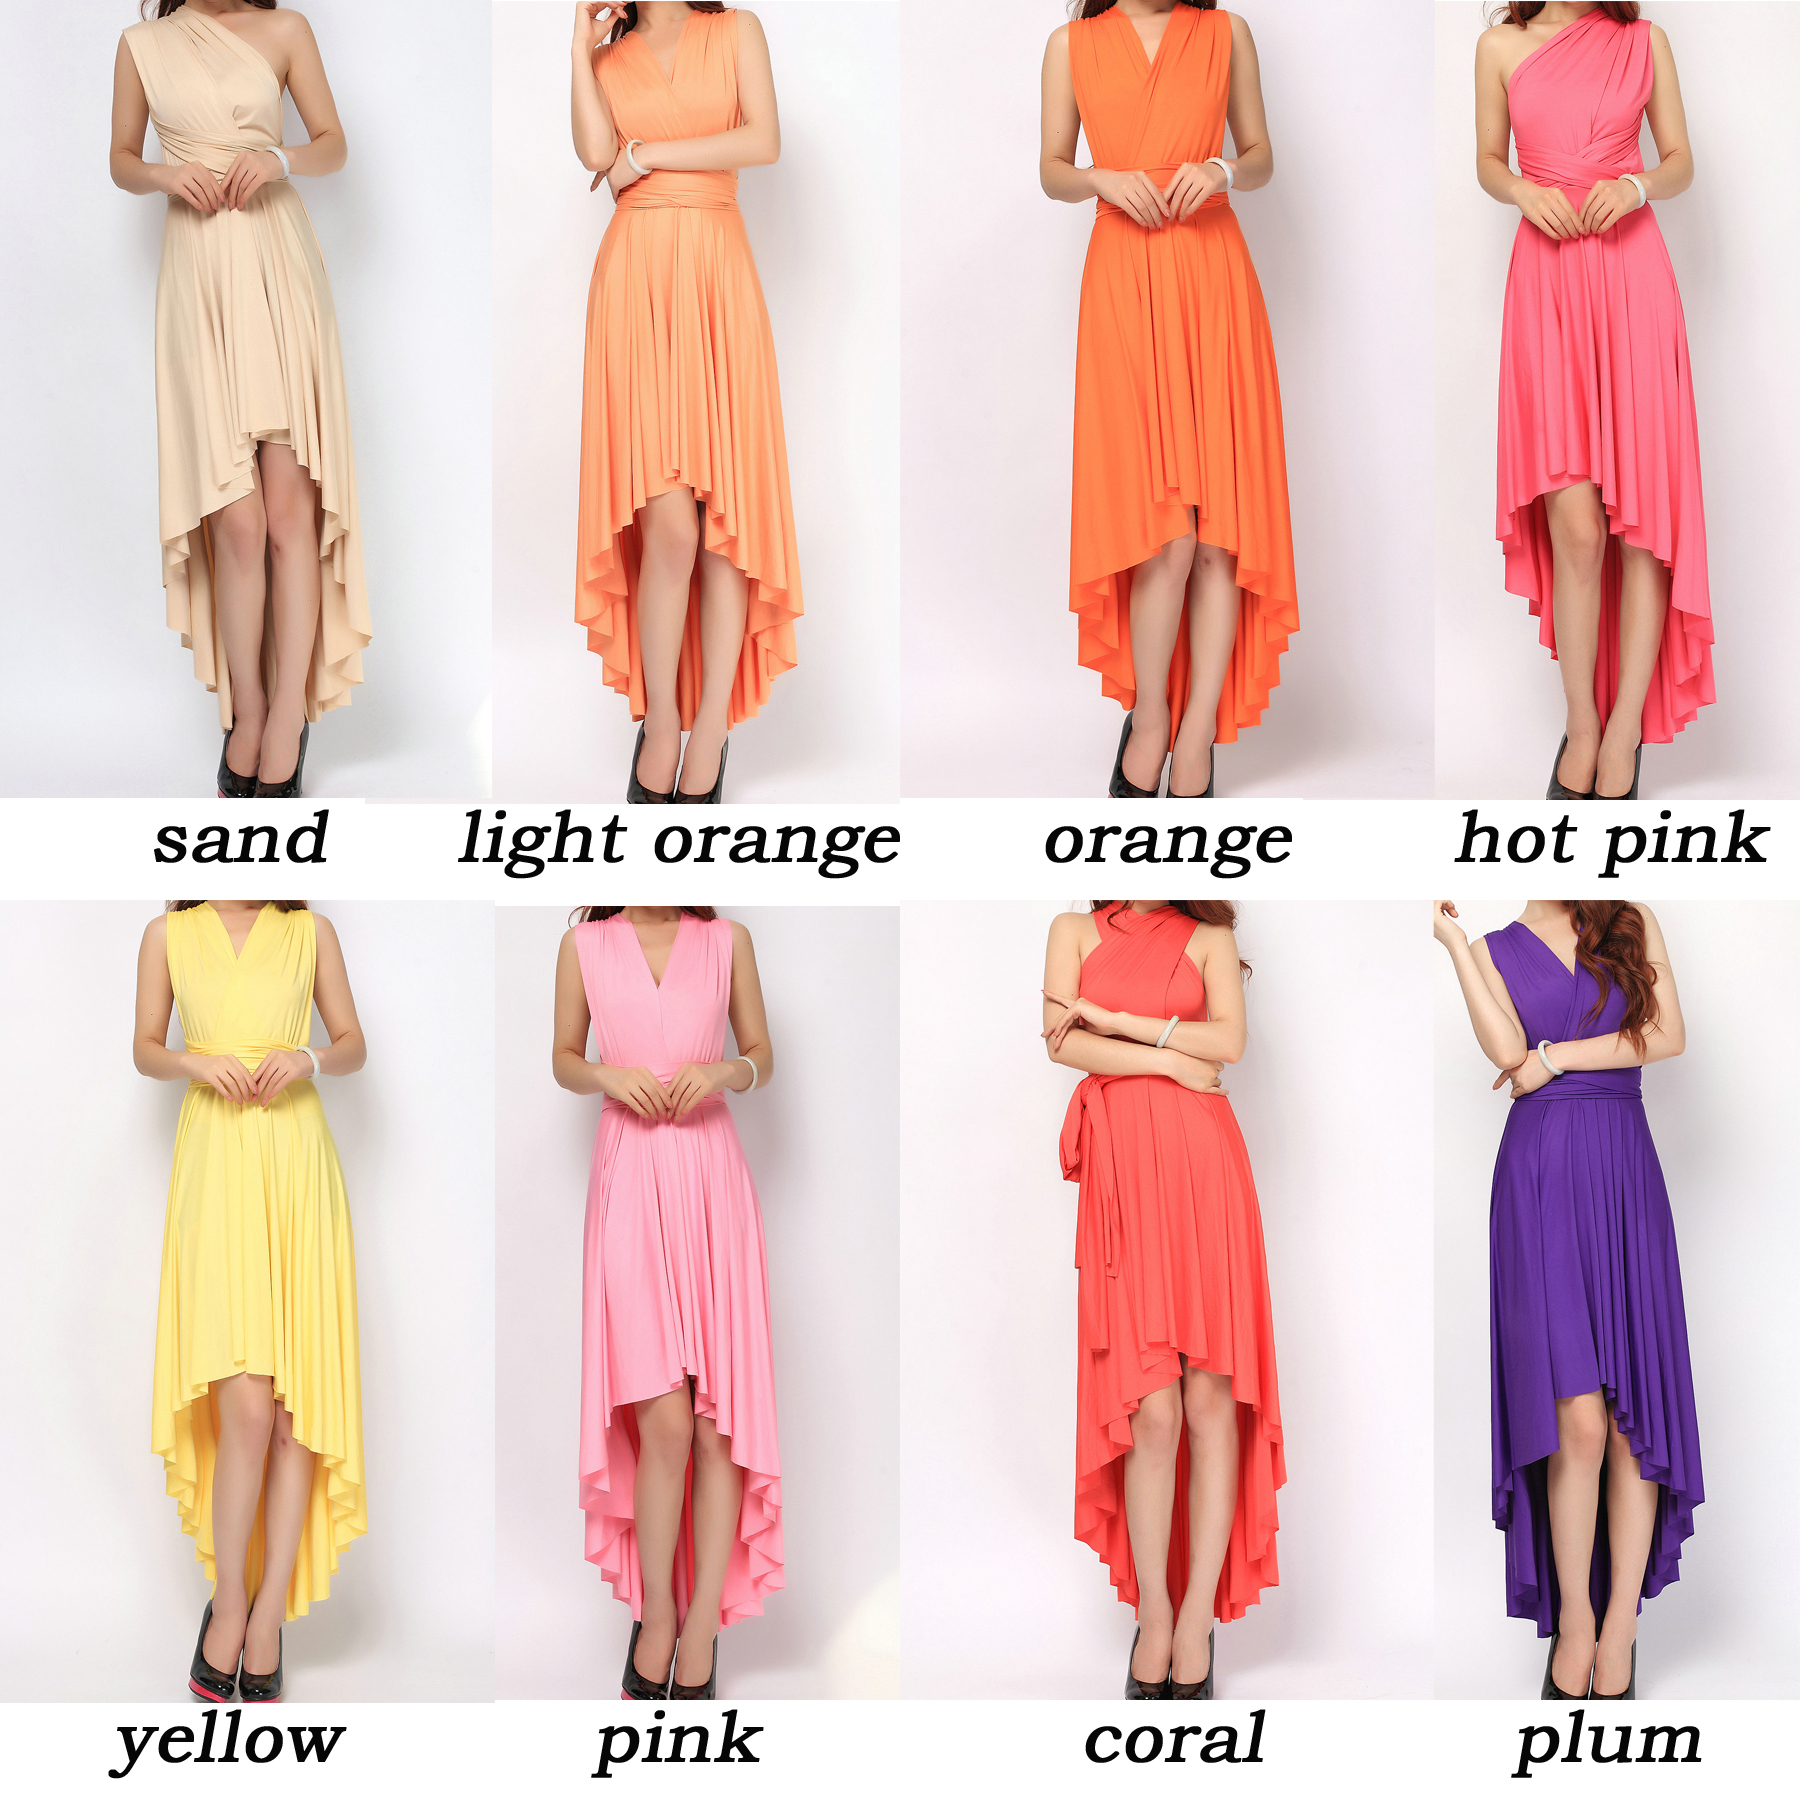 df04b29d1 triangle 2 infinity short infinity maxi 1 high low 2. The dress ...